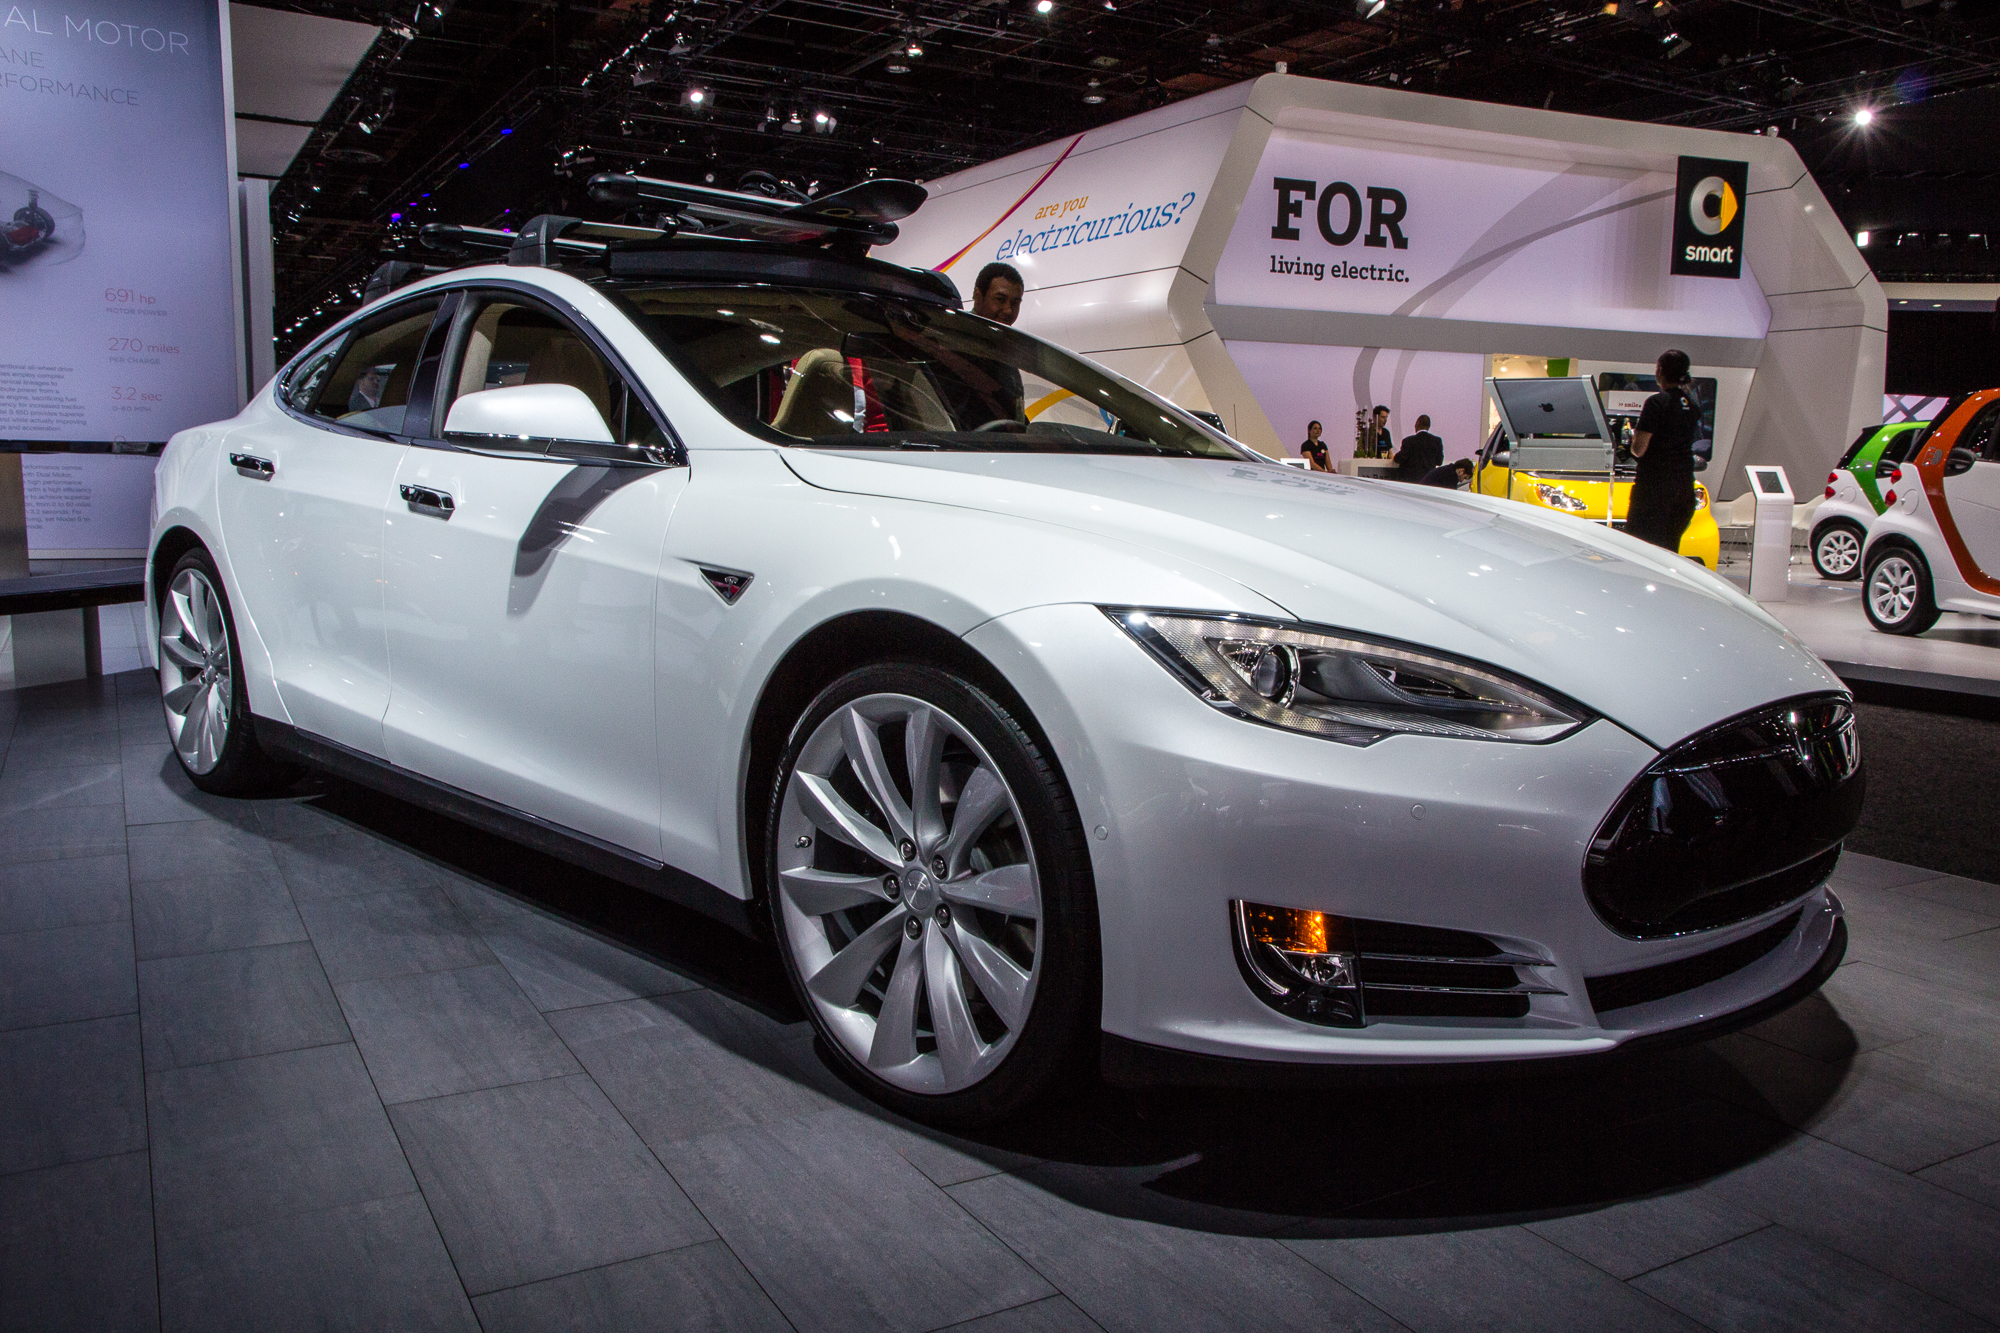 How To Drive A Tesla Model S Electric Car Free For 18 Months